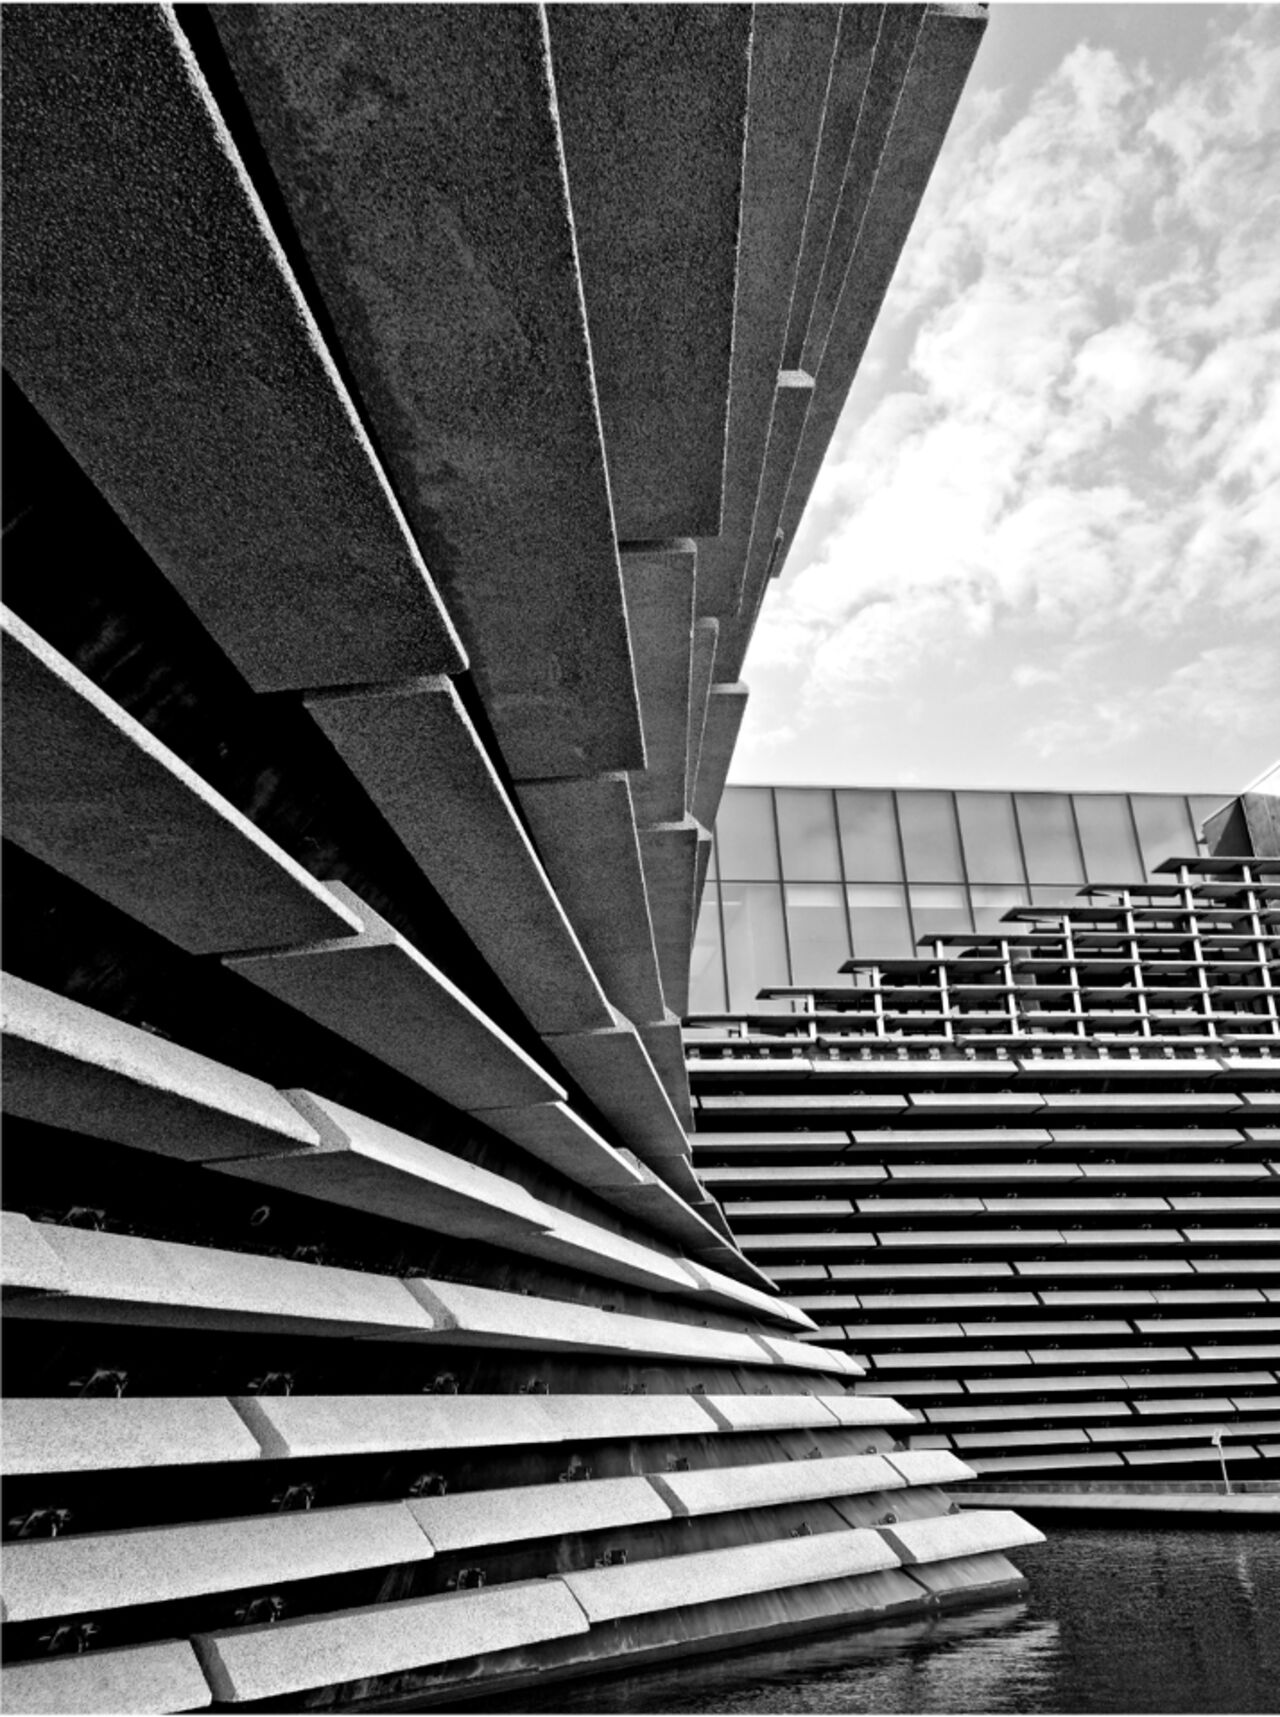 A black and white image of V&A Dundee.